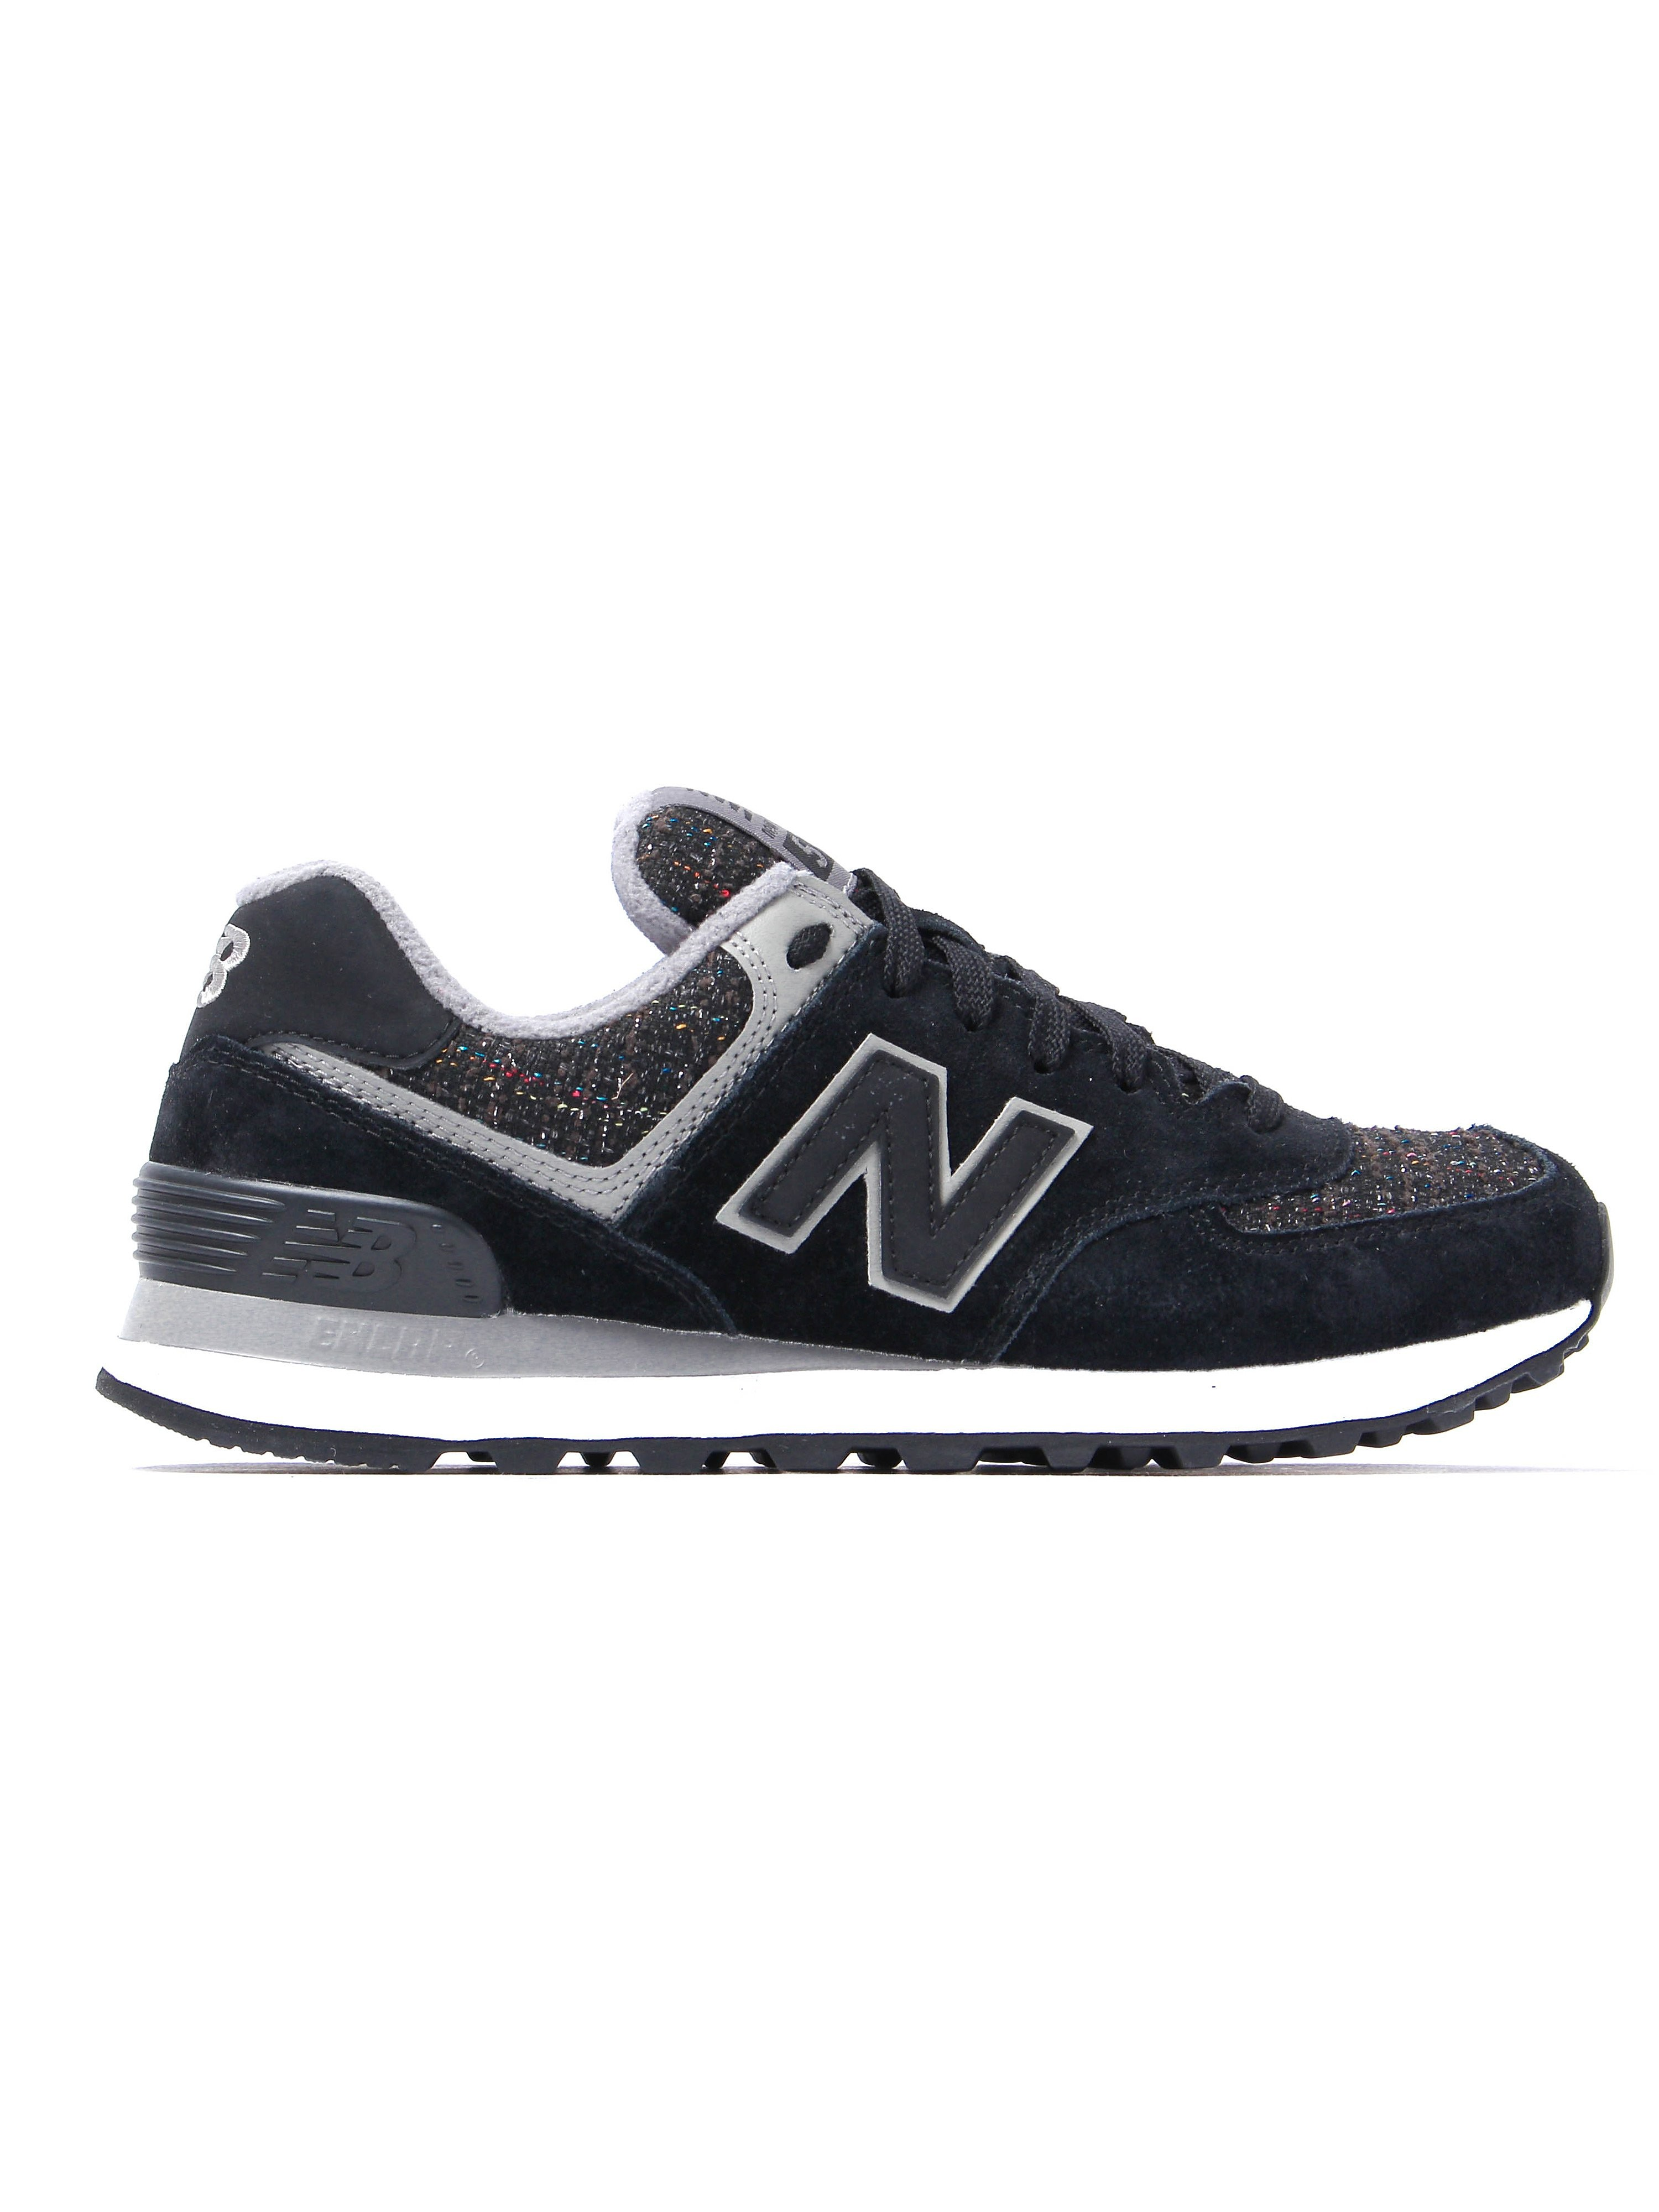 New Balance Women's 574 Trainers - Black Suede